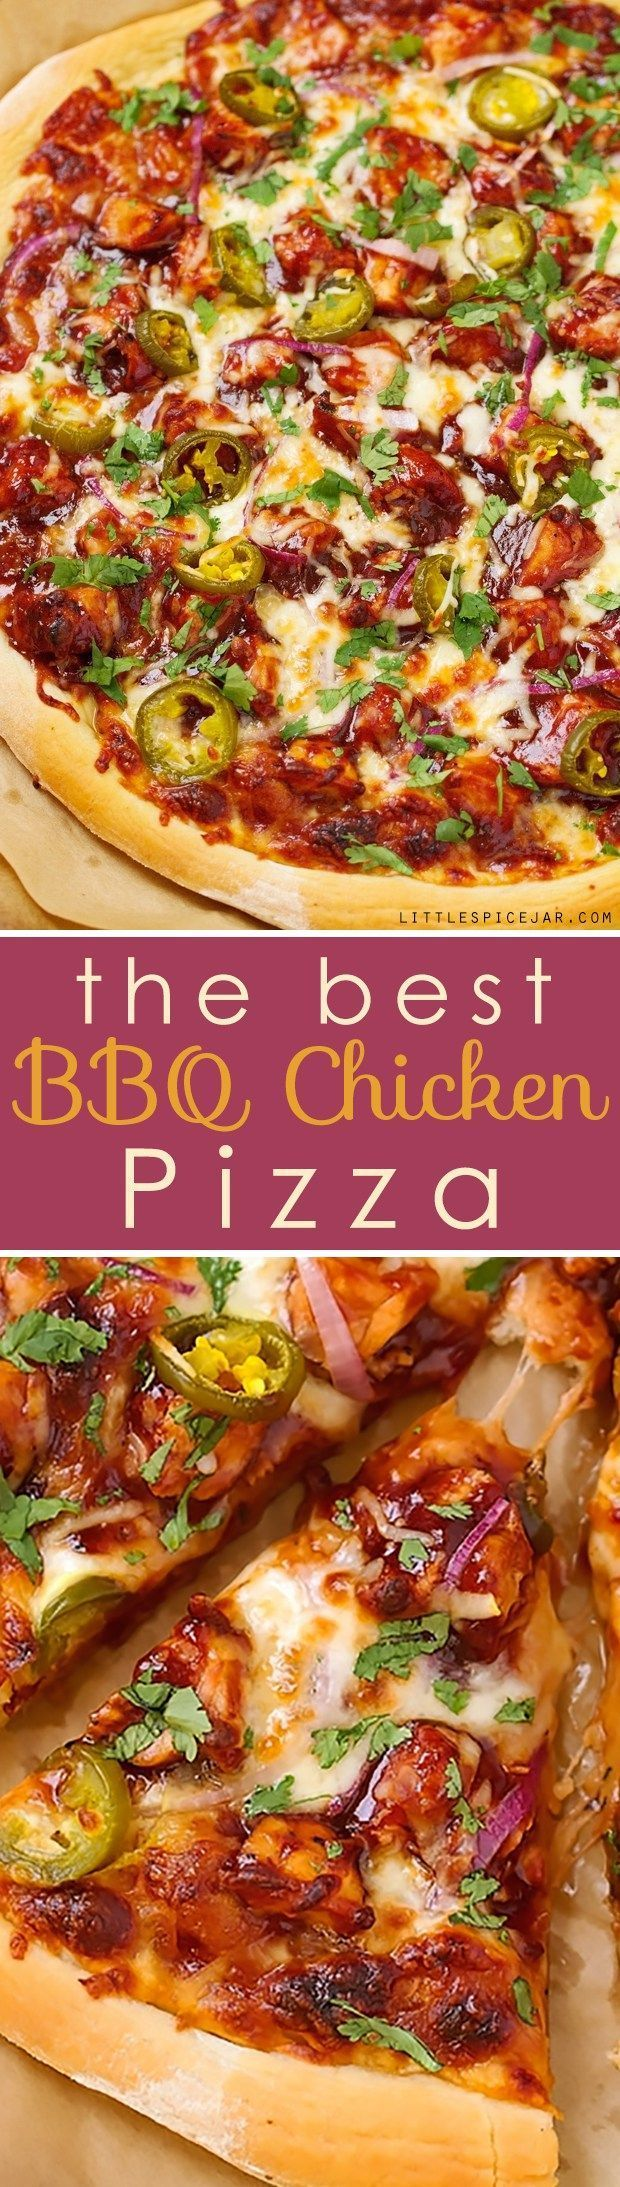 BBQ Chicken Pizza - made with grilled chicken, sliced jalapenos and red onions, and cilantro, So good you'll never go to CPK again!#bbqchickenpizza #chickenpizza #bbqpizza | http://Littlespicejar.com @Marzia [Little Spice Jar]